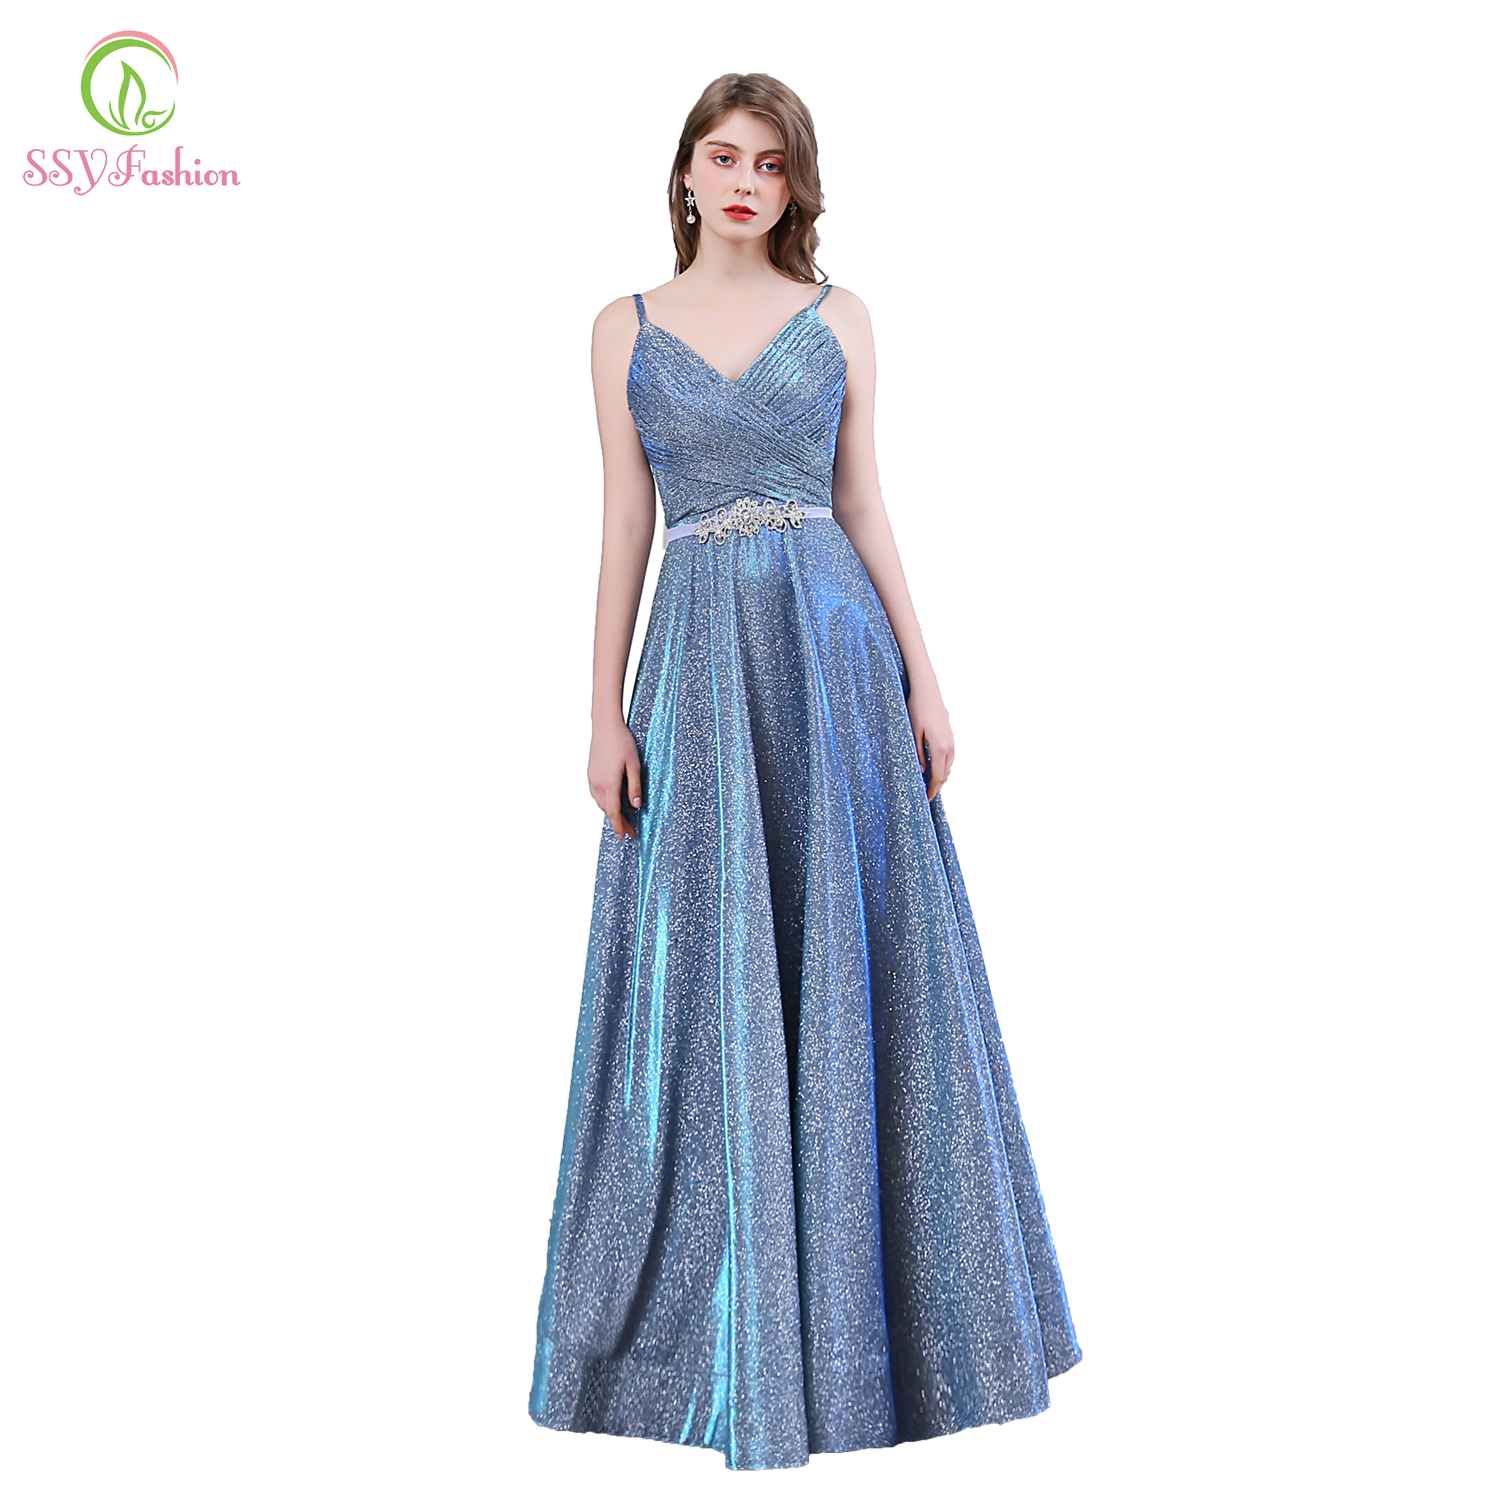 SSYFashion New Sparkling Evening Dress Sexy V-neck Backless Grey Blue Seqins Sashes Floor-length Prom Formal Party Gown Vestidos